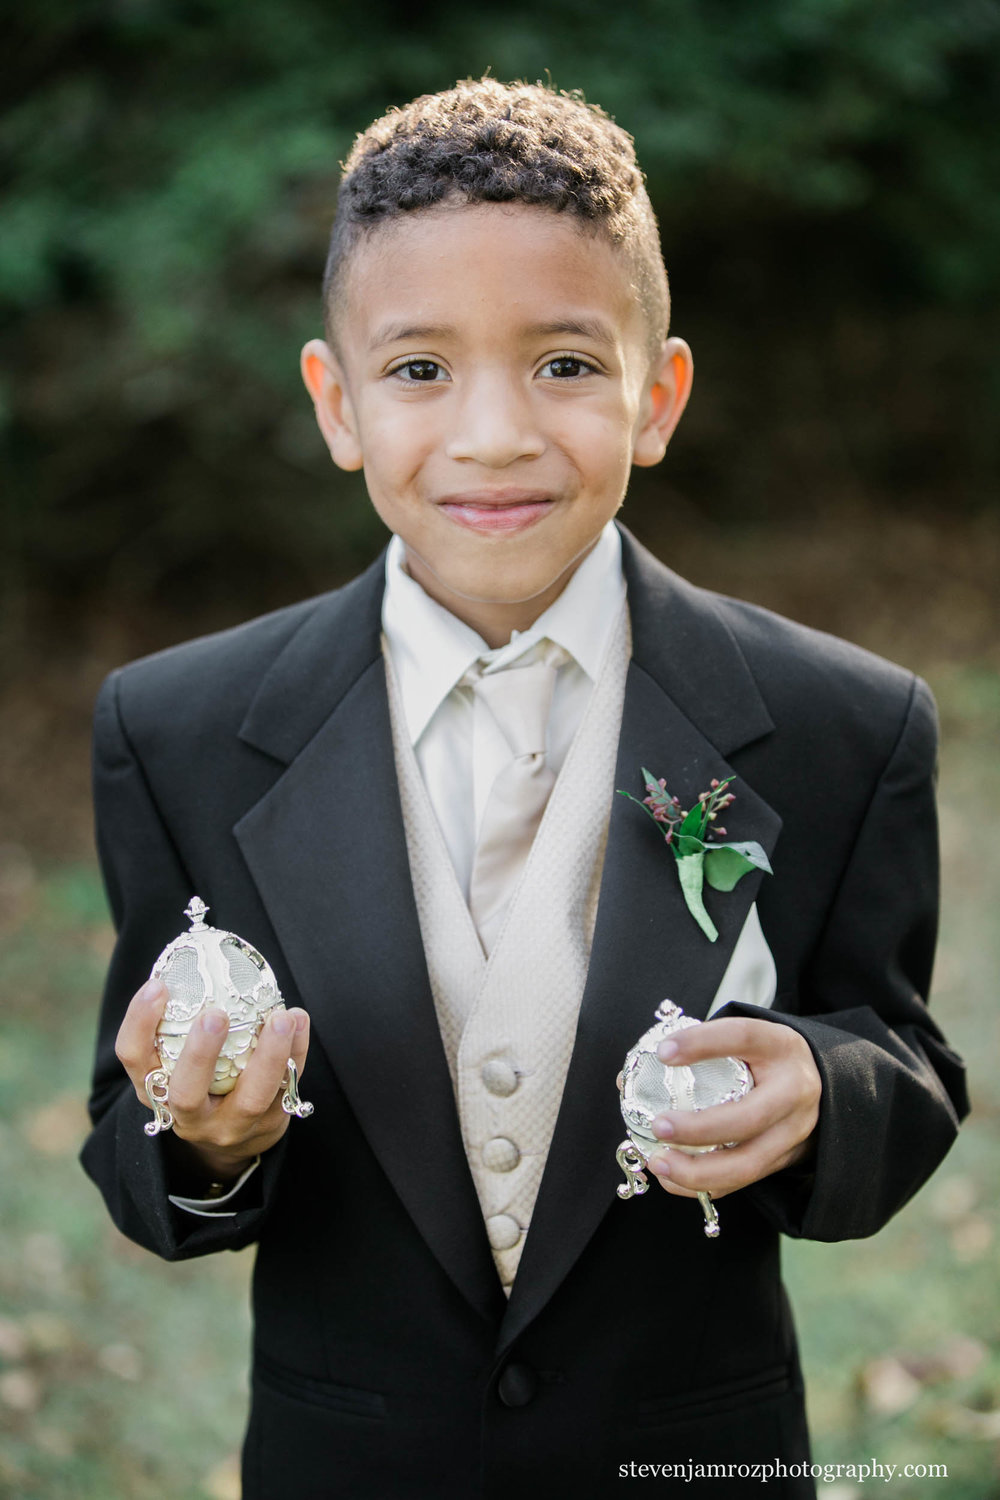 ring-bearer-photos-steven-jamroz-photography-0550.jpg